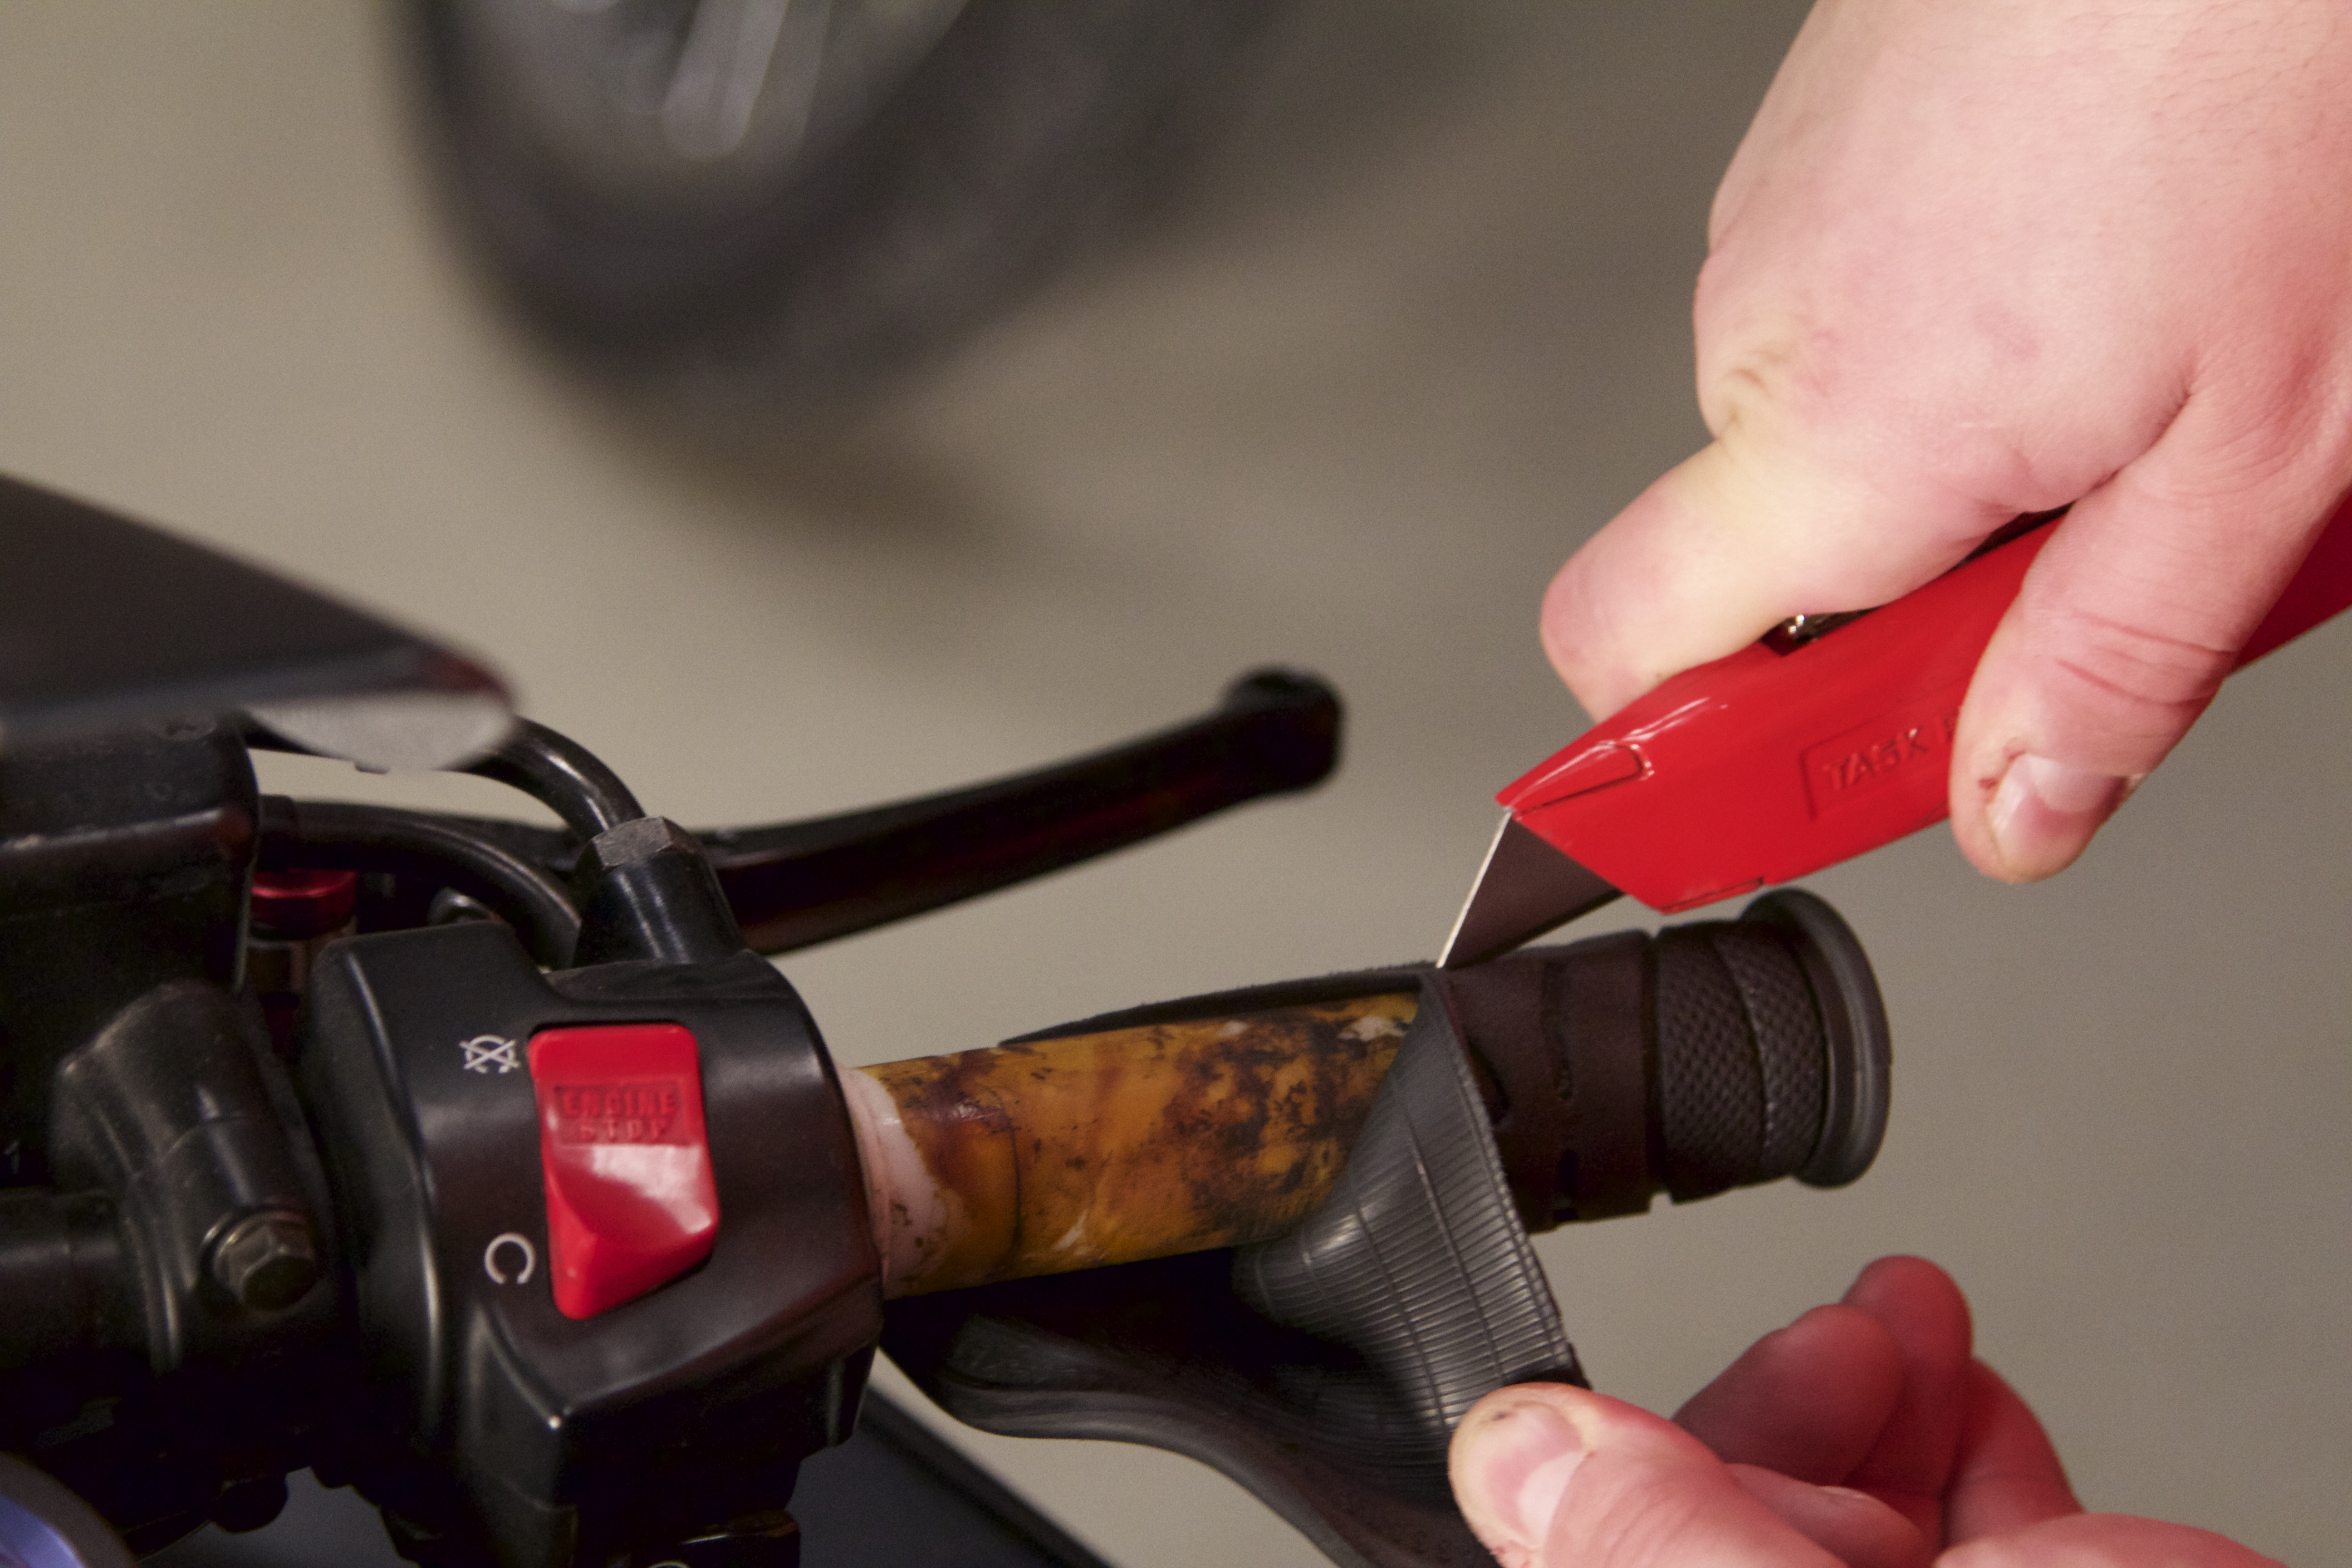 Wiring A 2 Way Pull Cord Switch Grips Tips How To Install New Hand On Your Motorcycle Revzilla